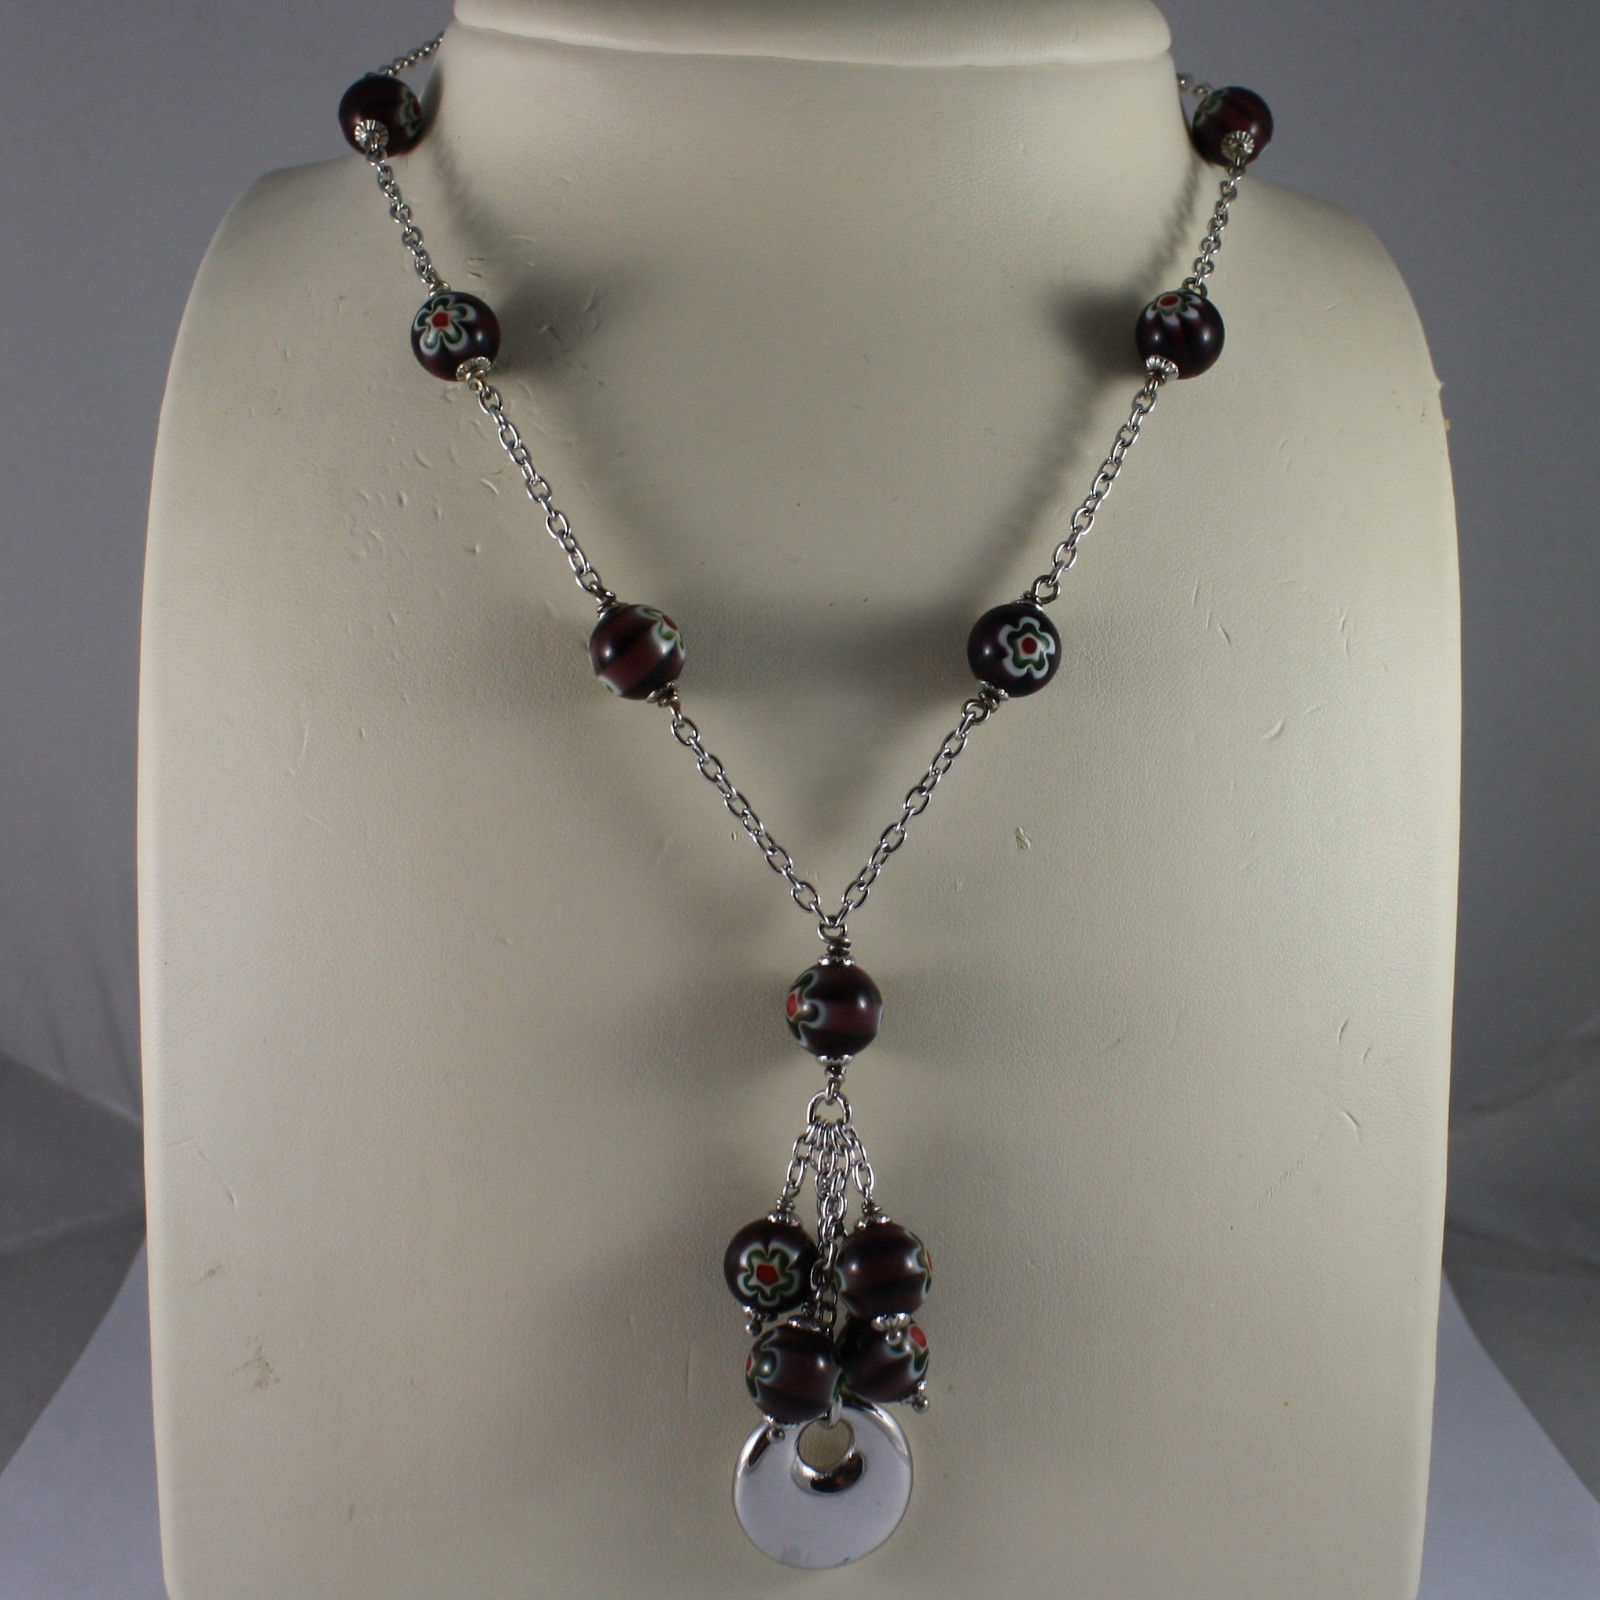 .925 SILVER RHODIUM NECKLACE WITH PURPLE MURRINE AND DISC PENDANT